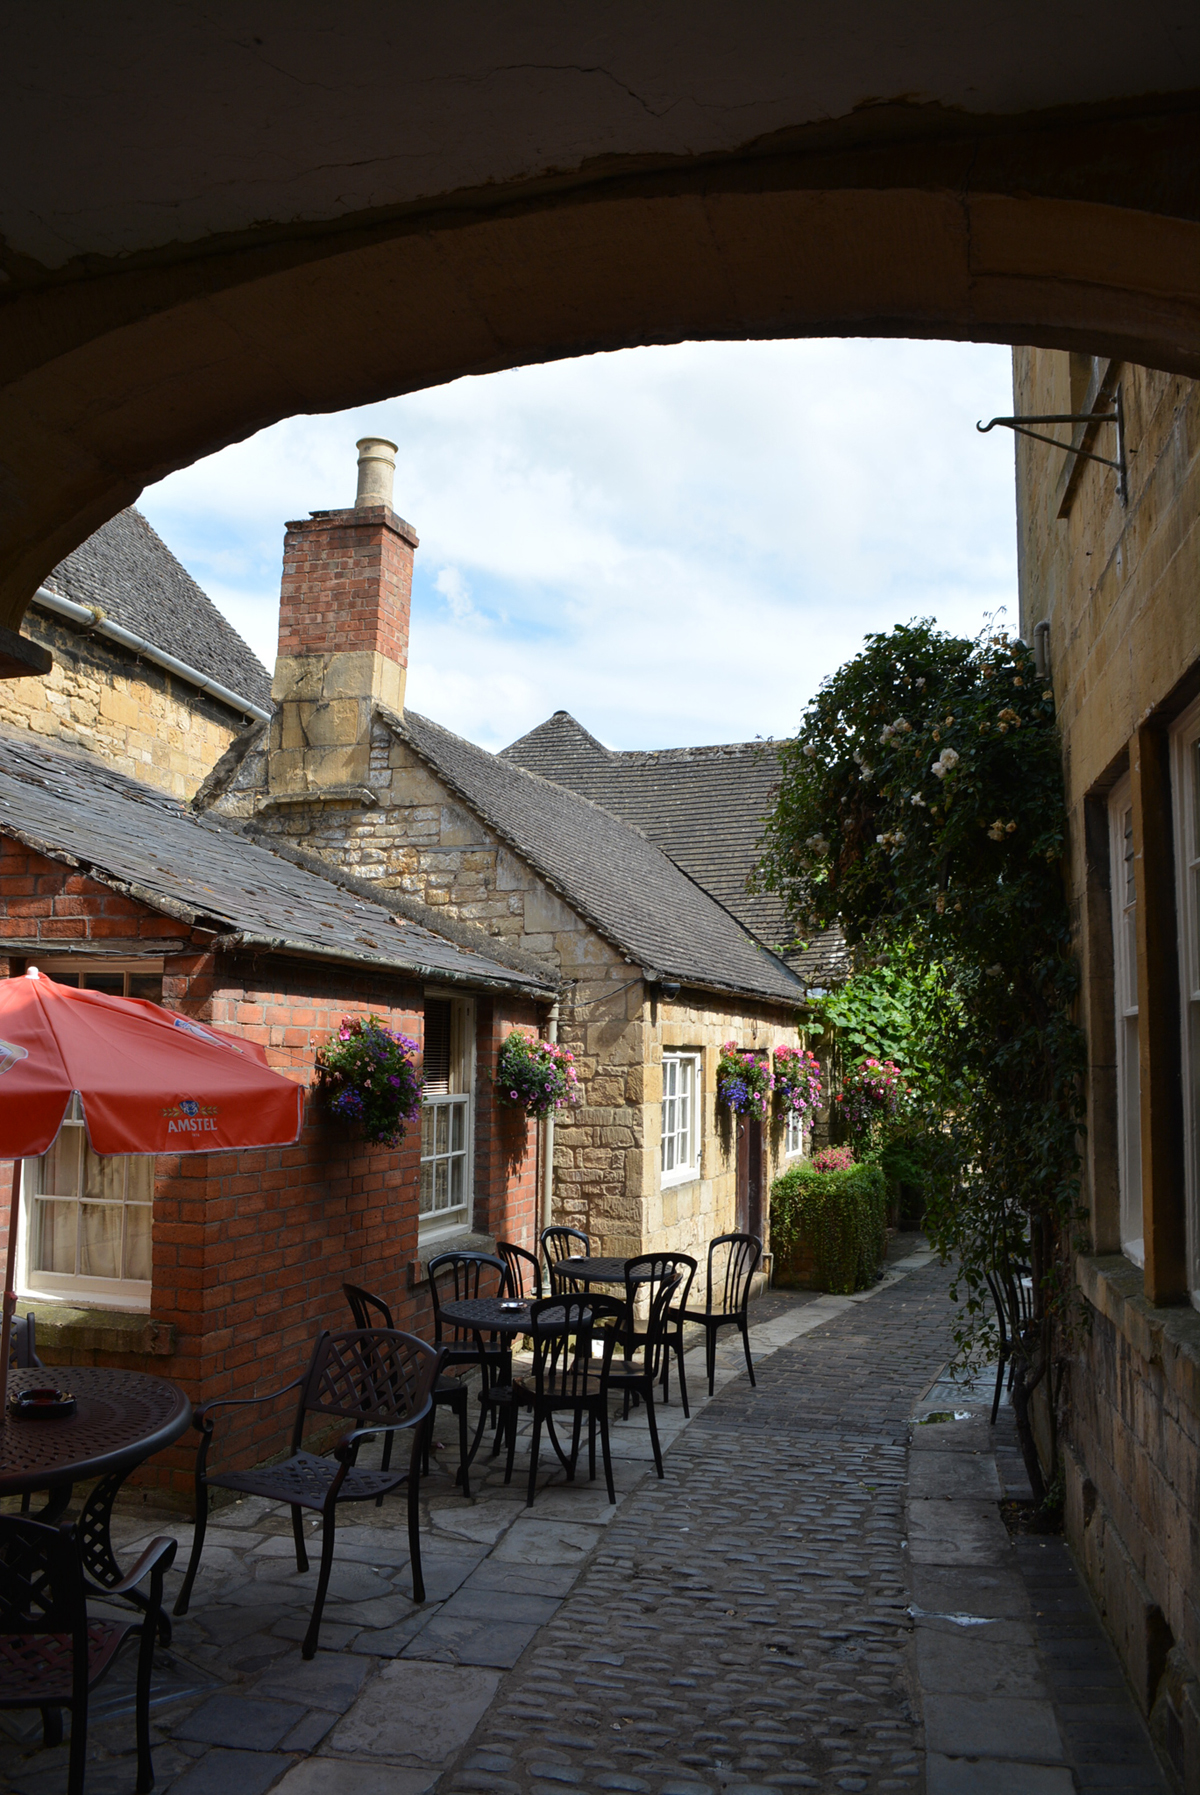 Alley in Chipping Campden's Old World Village